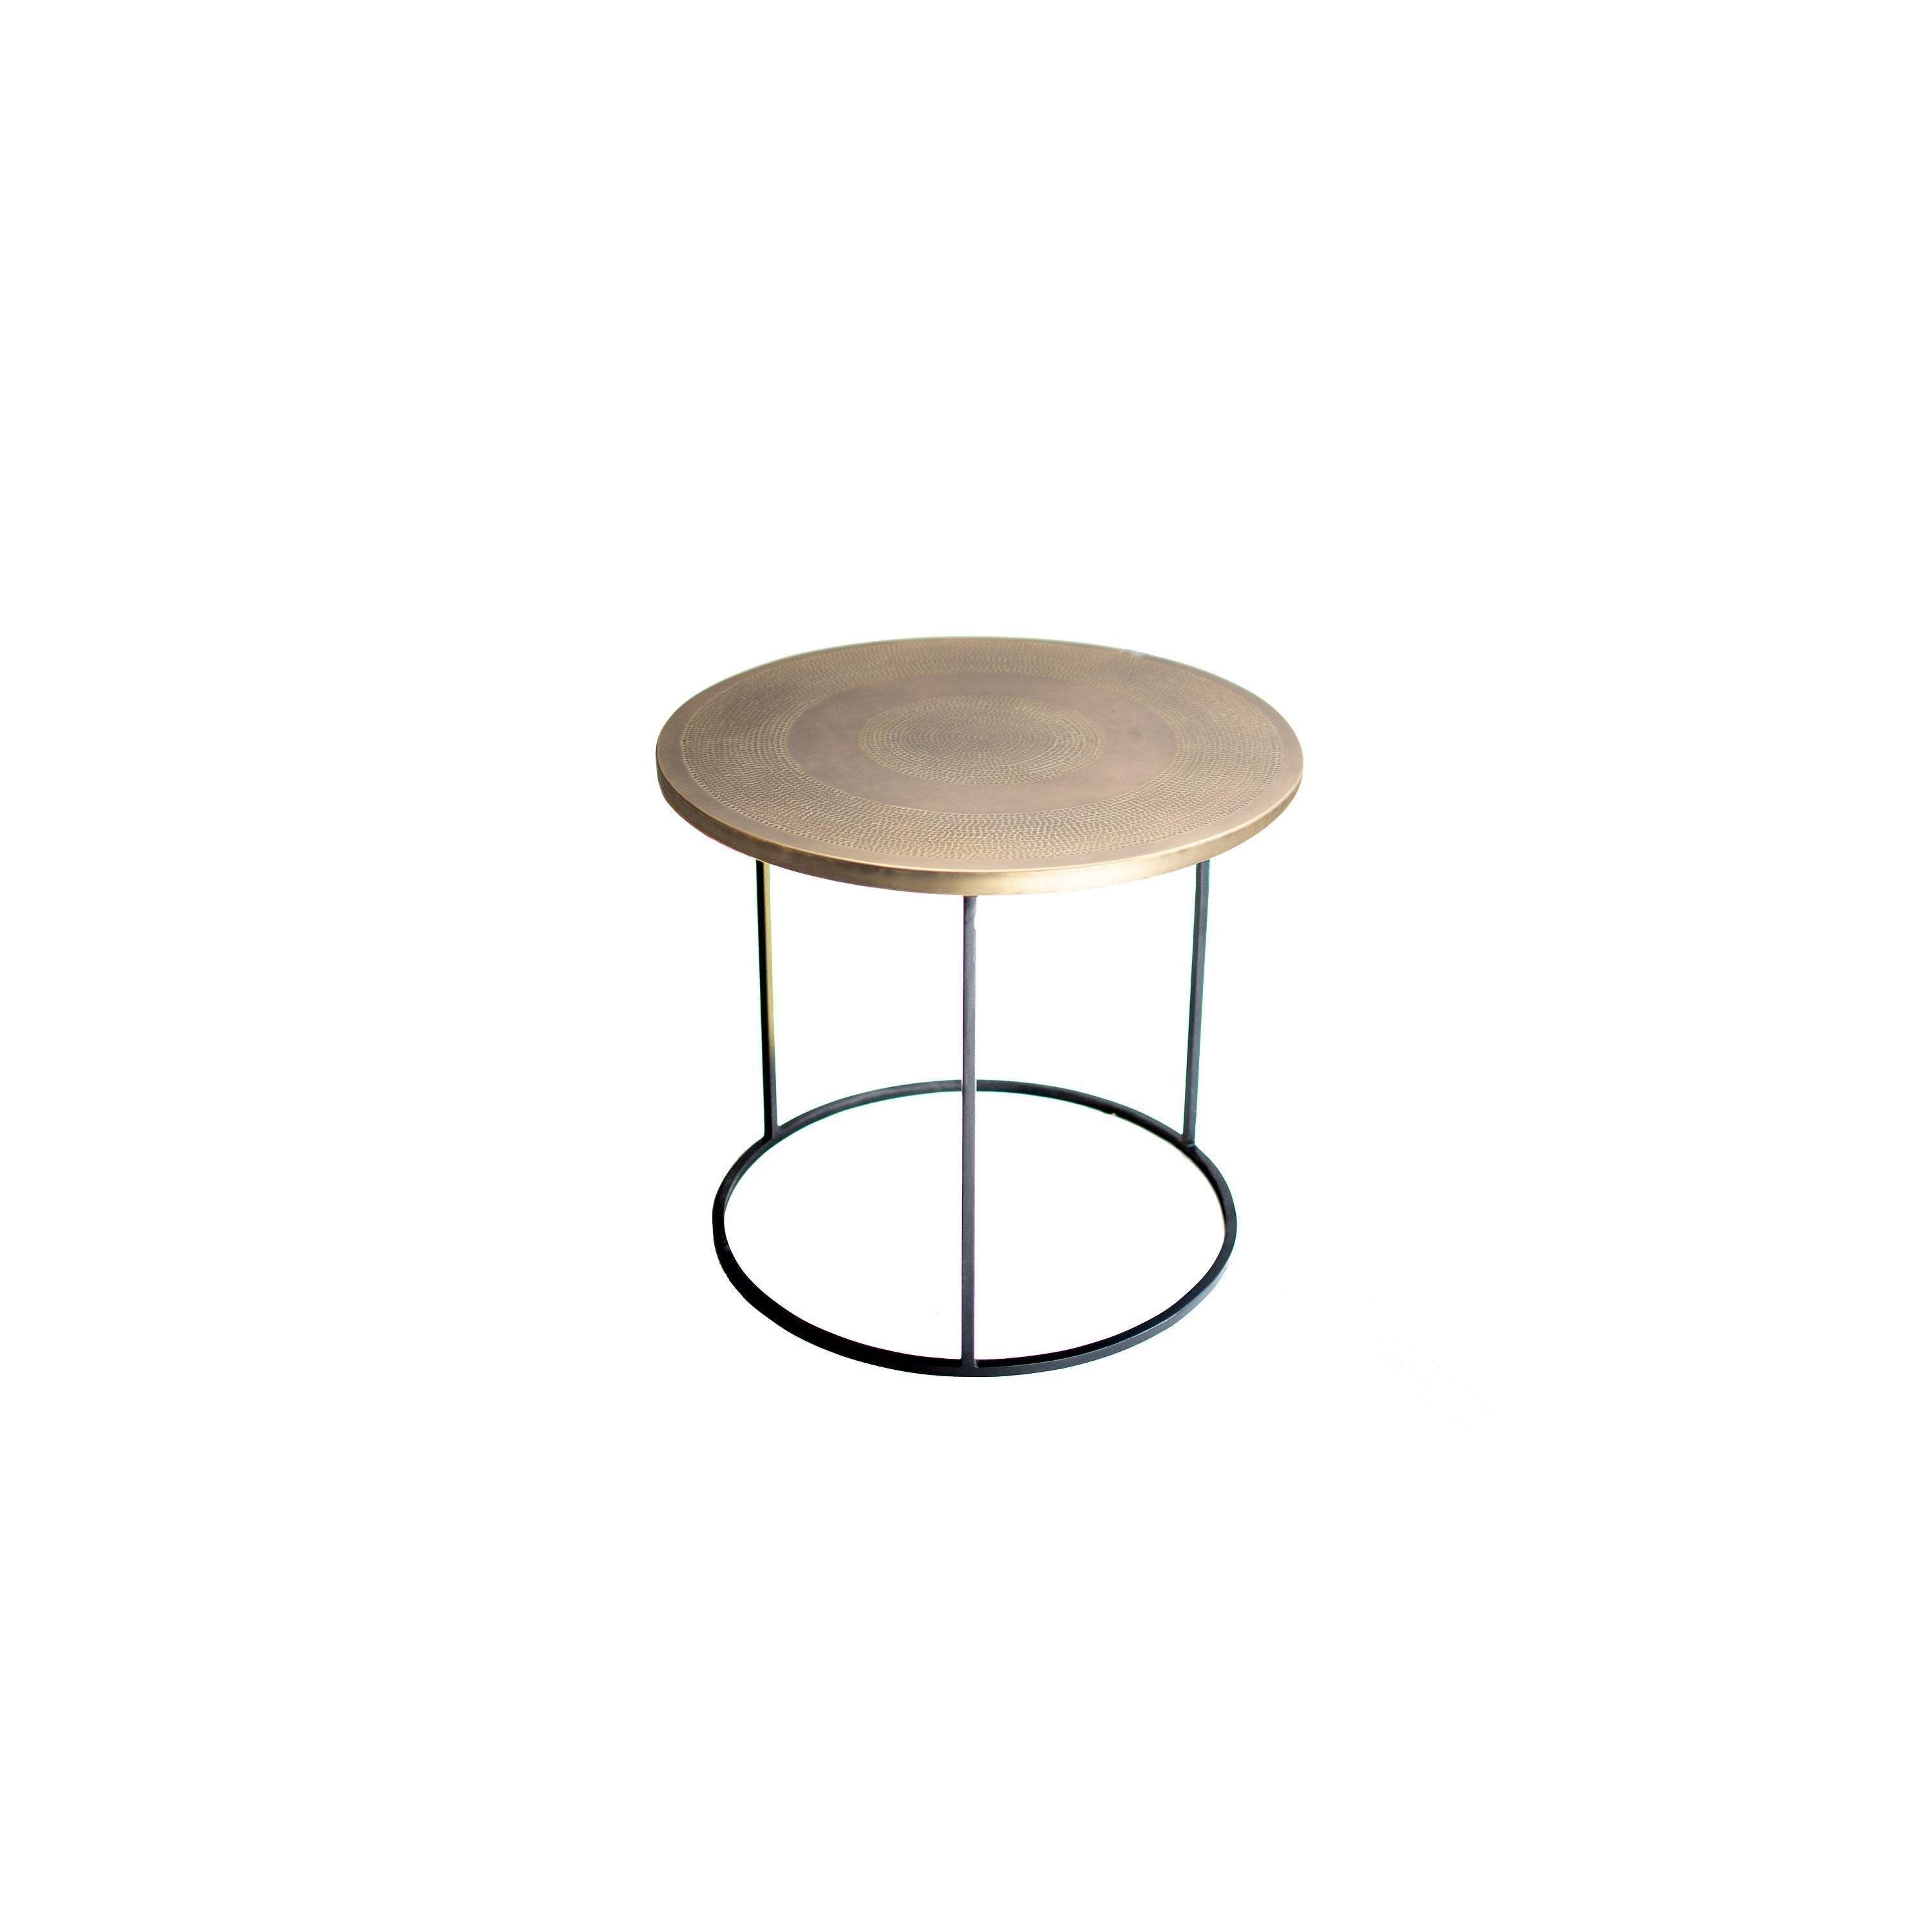 ARKA Living Handcrafted bronze round end table with black metal base